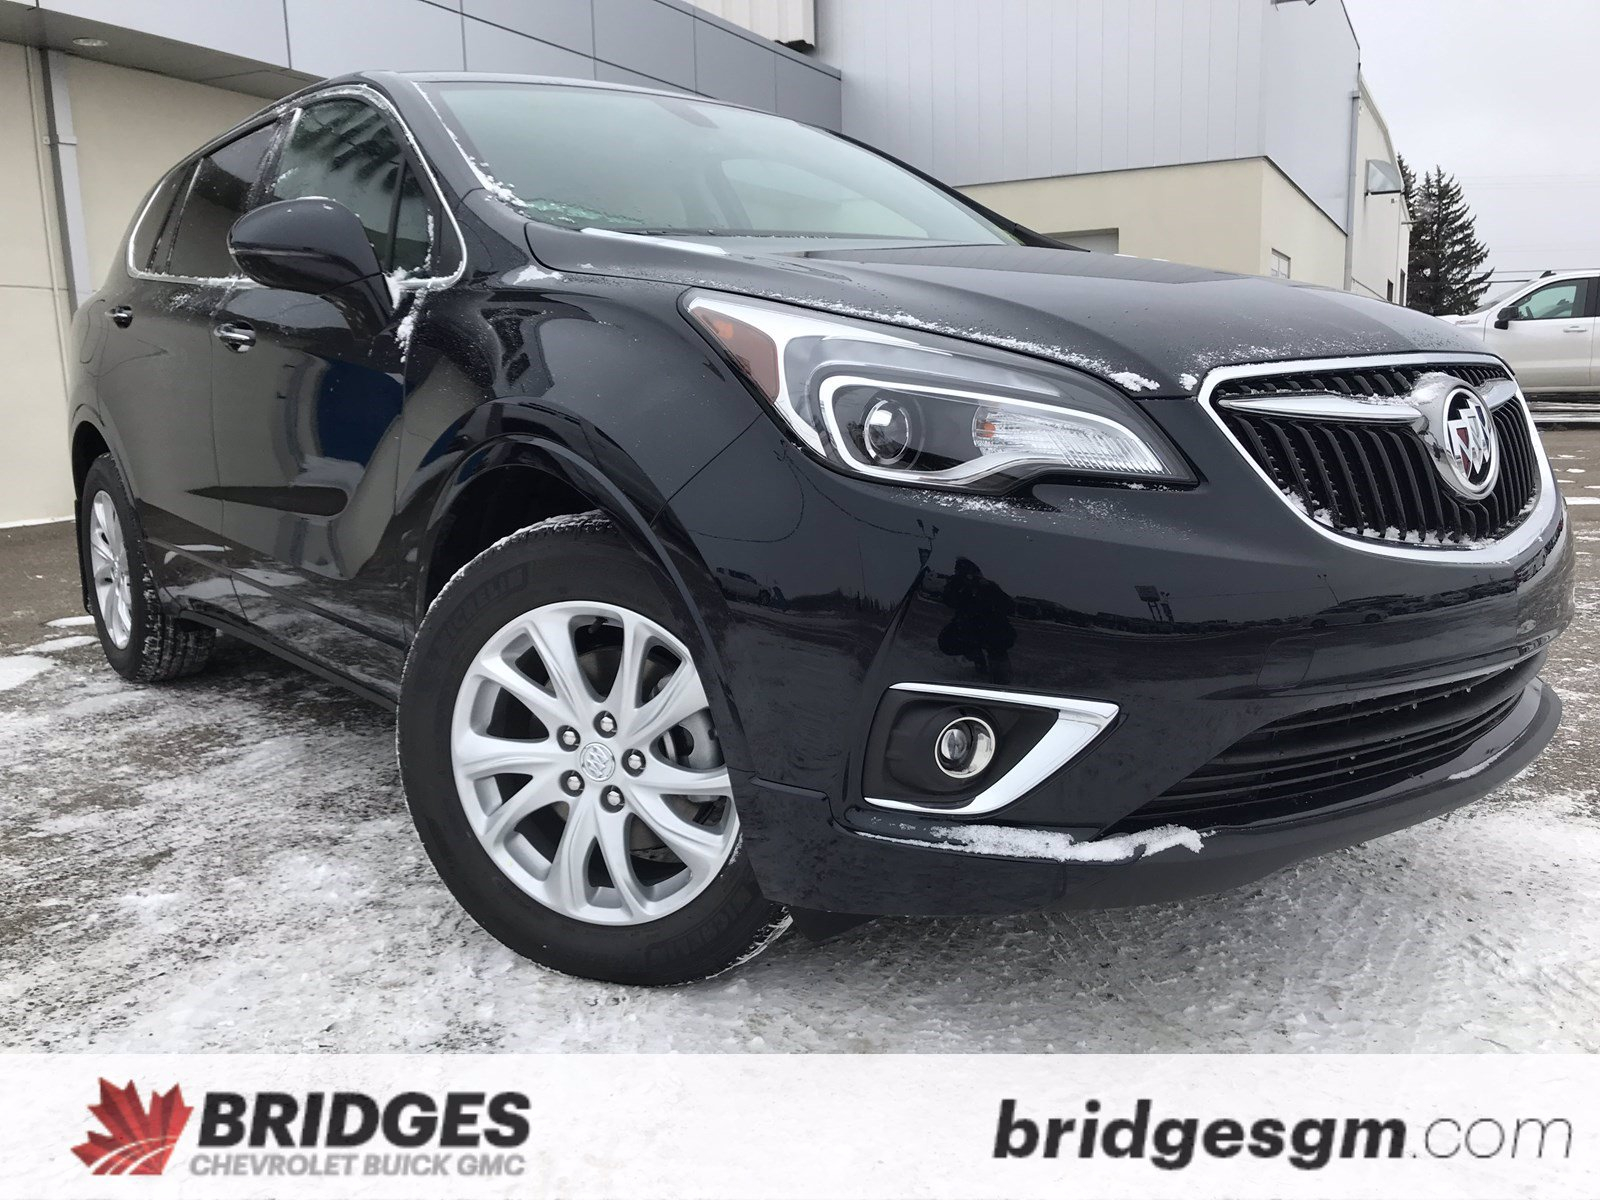 New 2020 Buick Envision Preferred Awd 2022 Buick Envision Owners Manual, Options, Oil Change